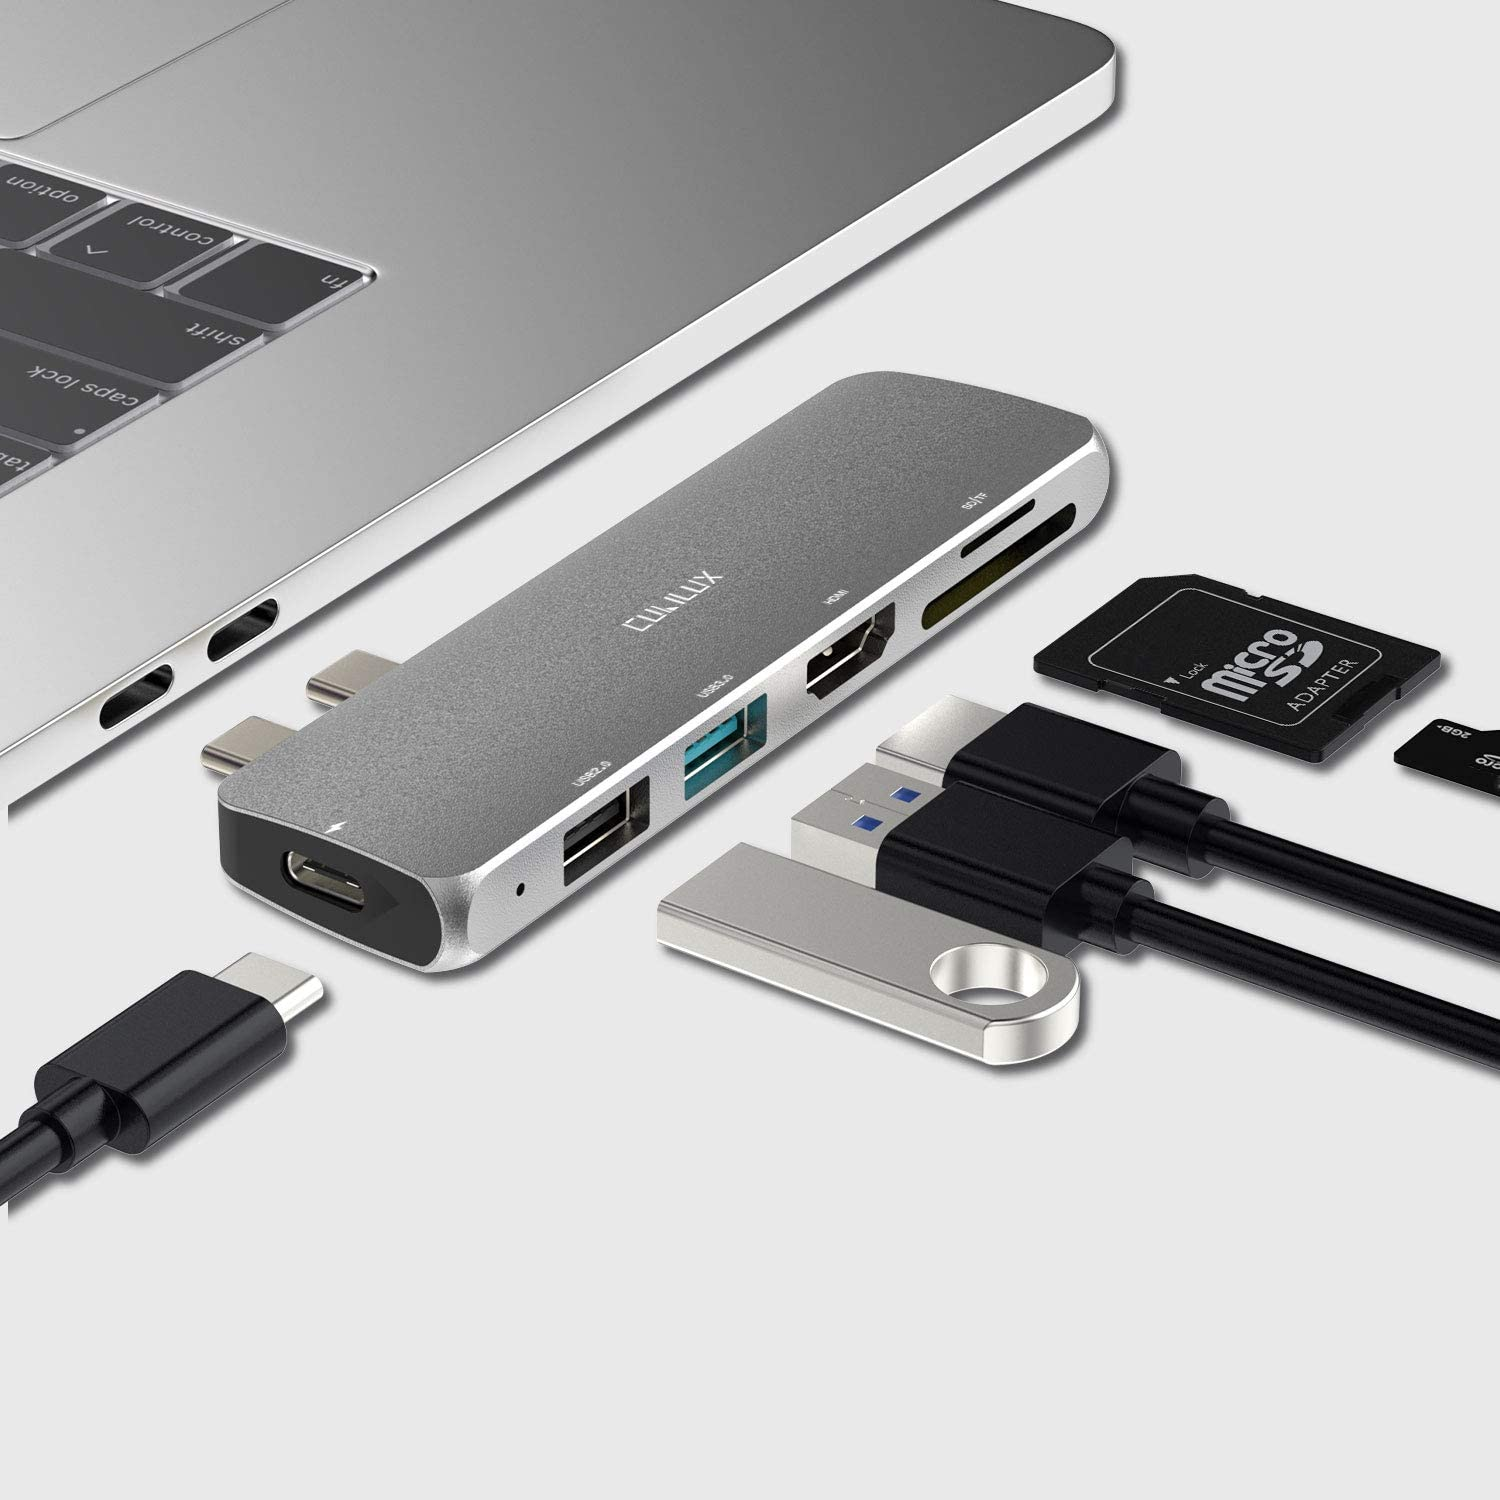 Cubilux 6-in-1 USB C to HDMI/USB/SD/TF Card Reader/ 100W PD Charging Multiport Docking Station/HUB Compatible with 2020/2019/2018/2017/2016 MacBook Pro (M1 Chip), 1 x USB 3.0, 1 x USB 2.0